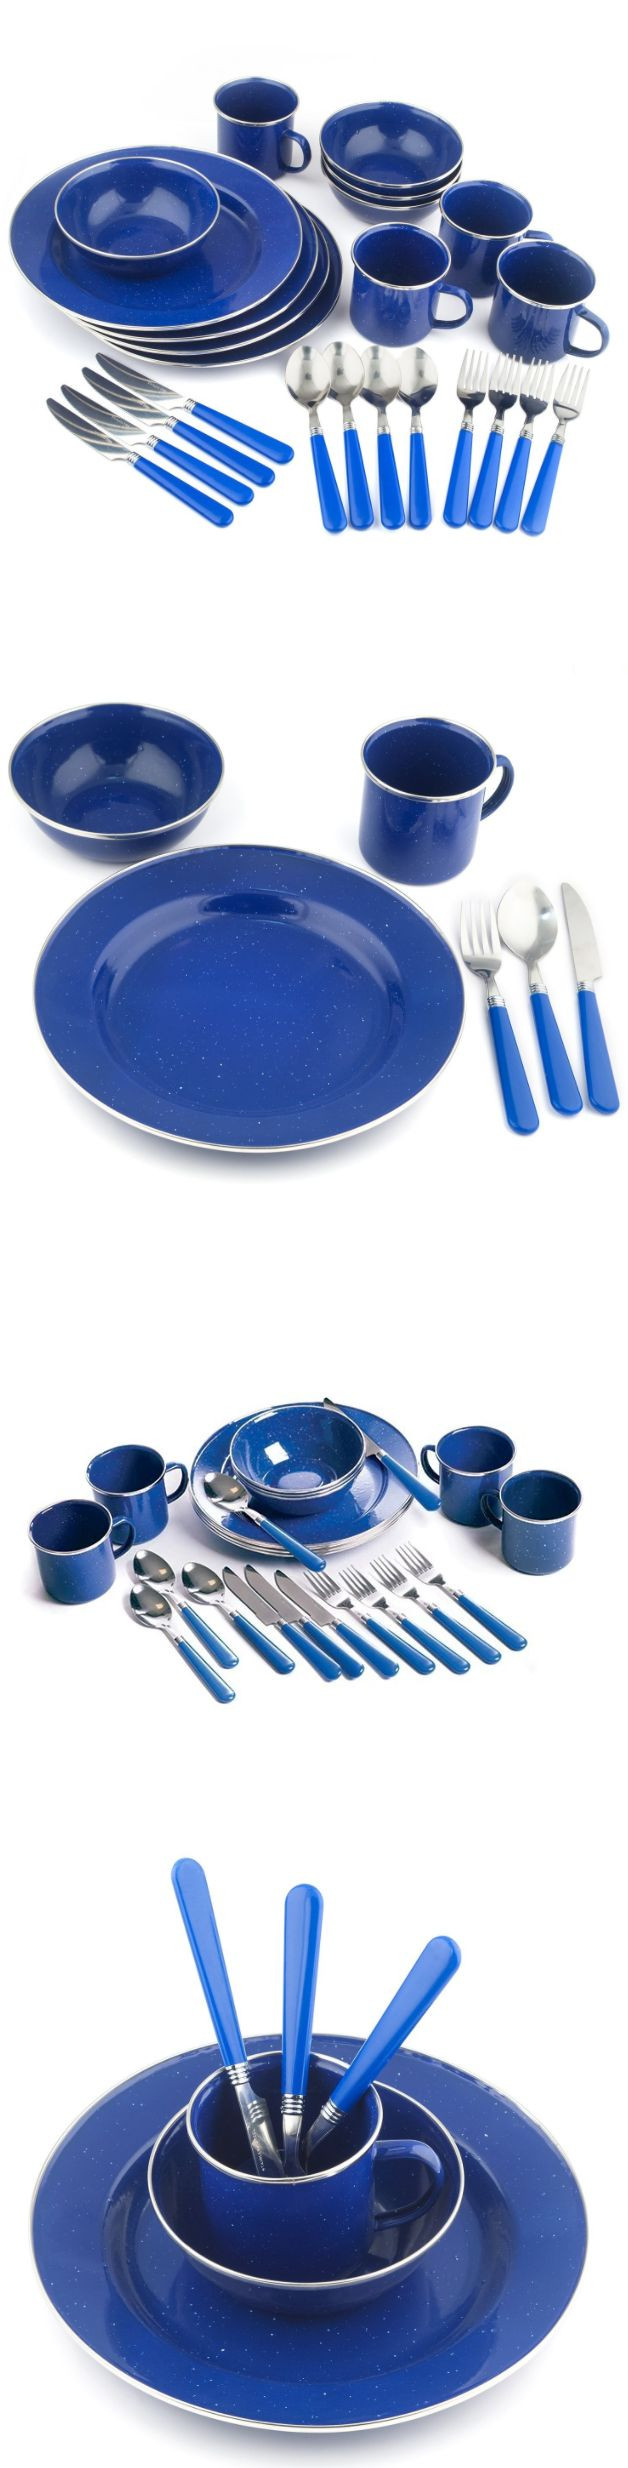 Outdoor Tableware 181383: Outdoor Dinnerware 24 Pc Blue Enamel Camping Picnic Tableware Set Service For 4 -> BUY IT NOW ONLY: $42.99 on eBay!